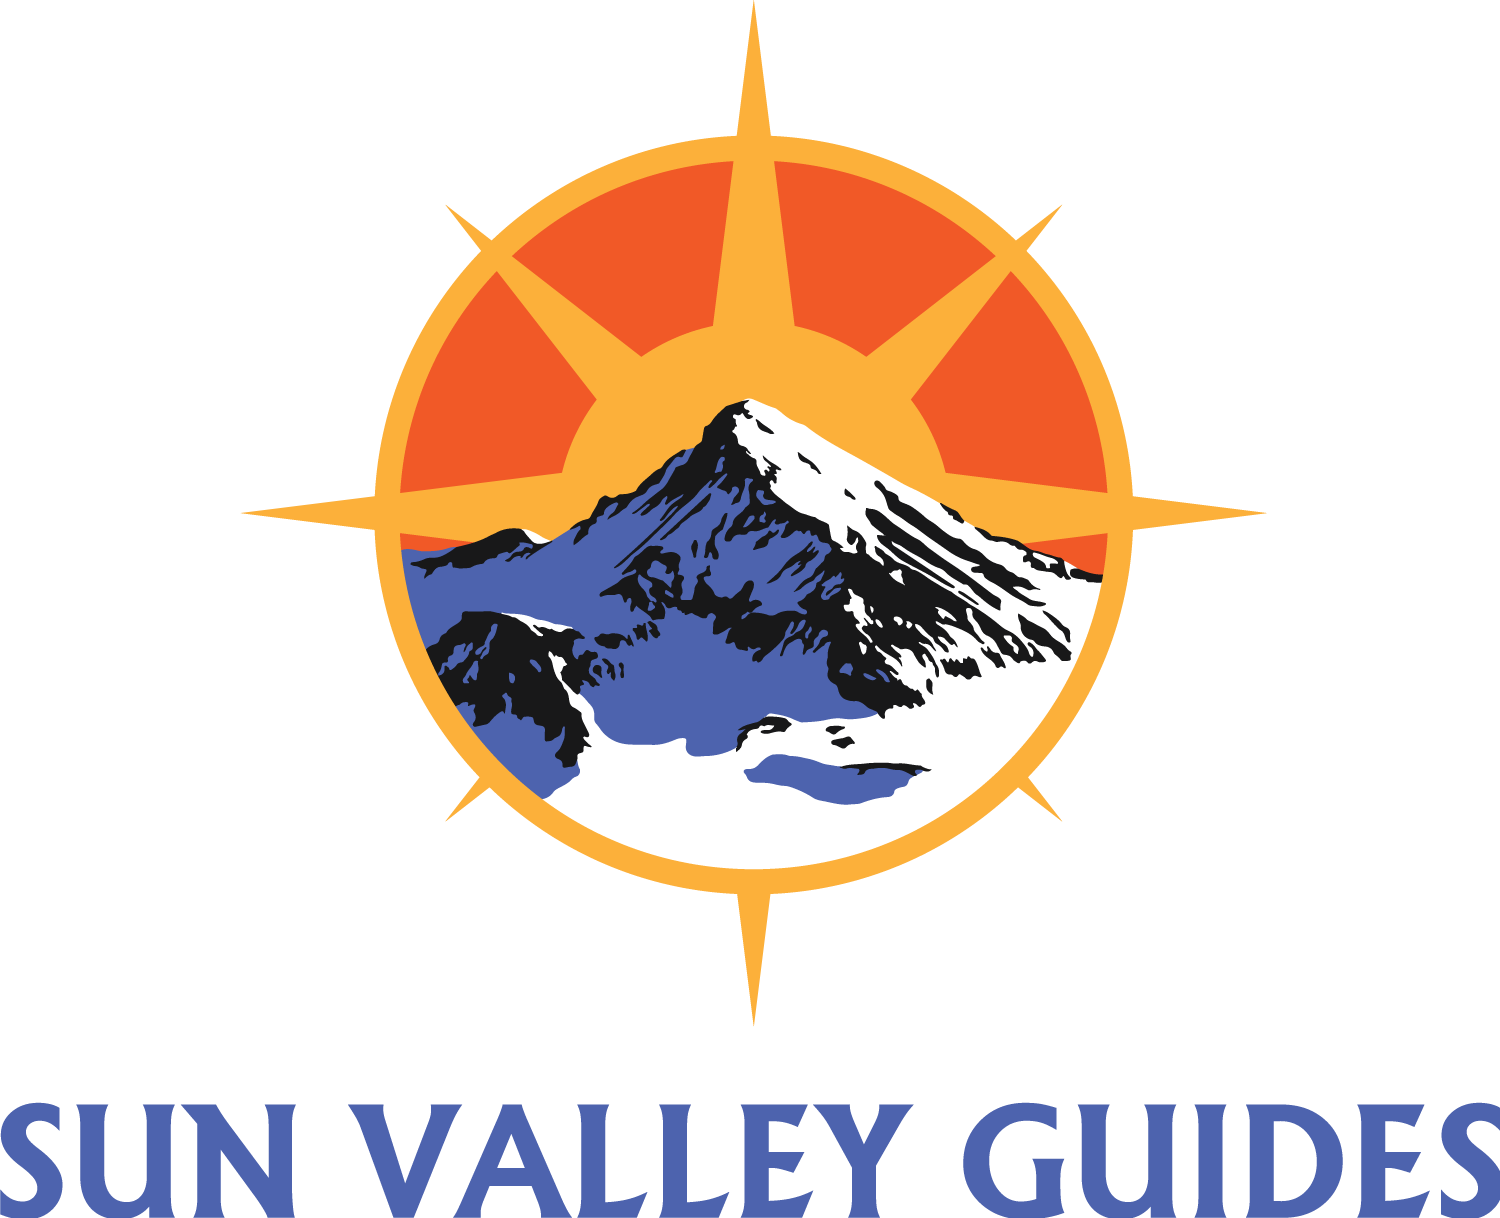 Sun Valley Guides